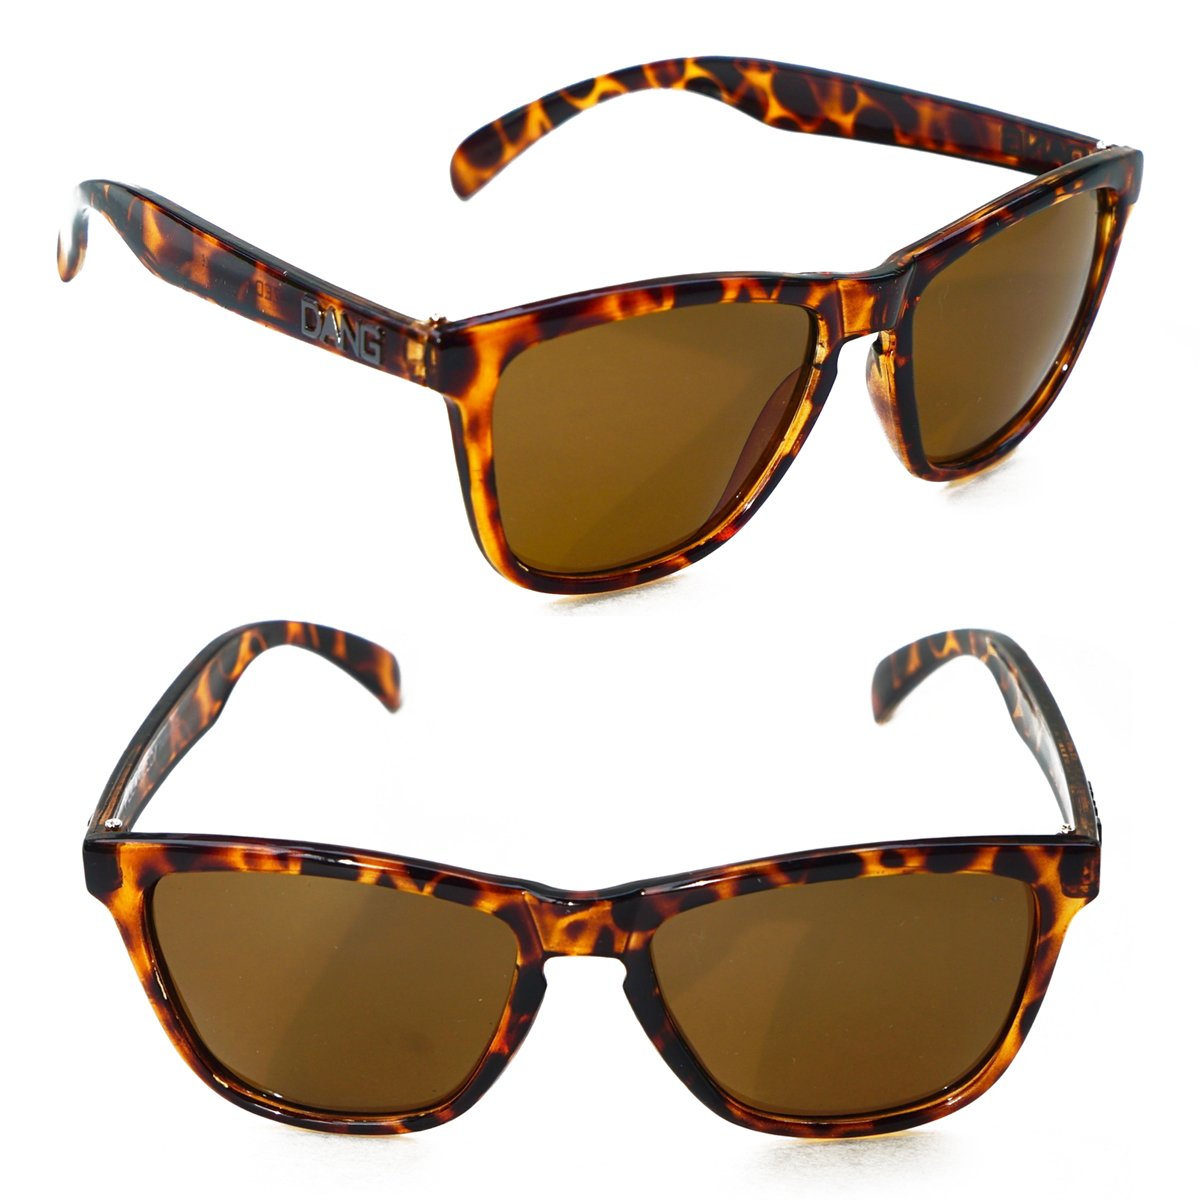 dd0e73aa9c Amazon.com  Polarized Tortoise Shell Sunglasses with Amber Lenses by DANG  Shades  Clothing